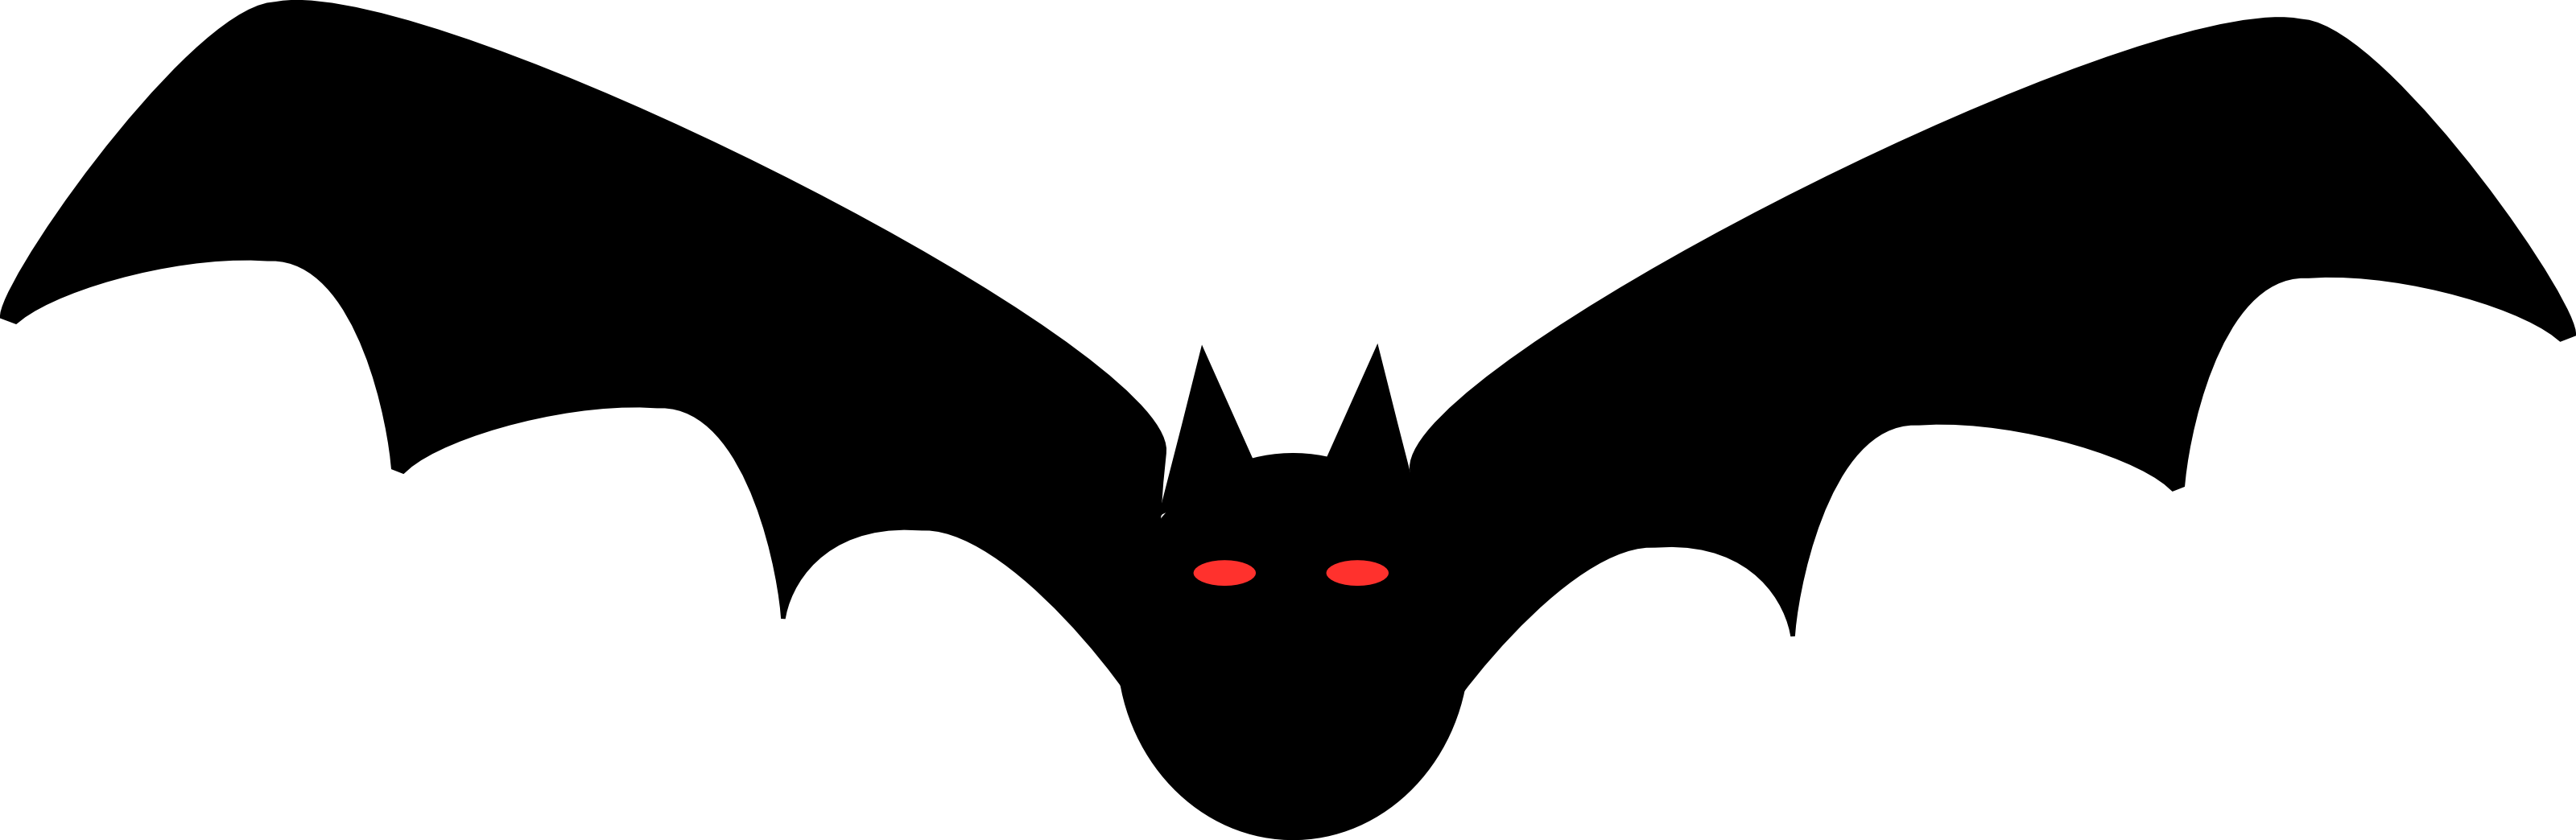 Halloween Bat Photos PNG Image